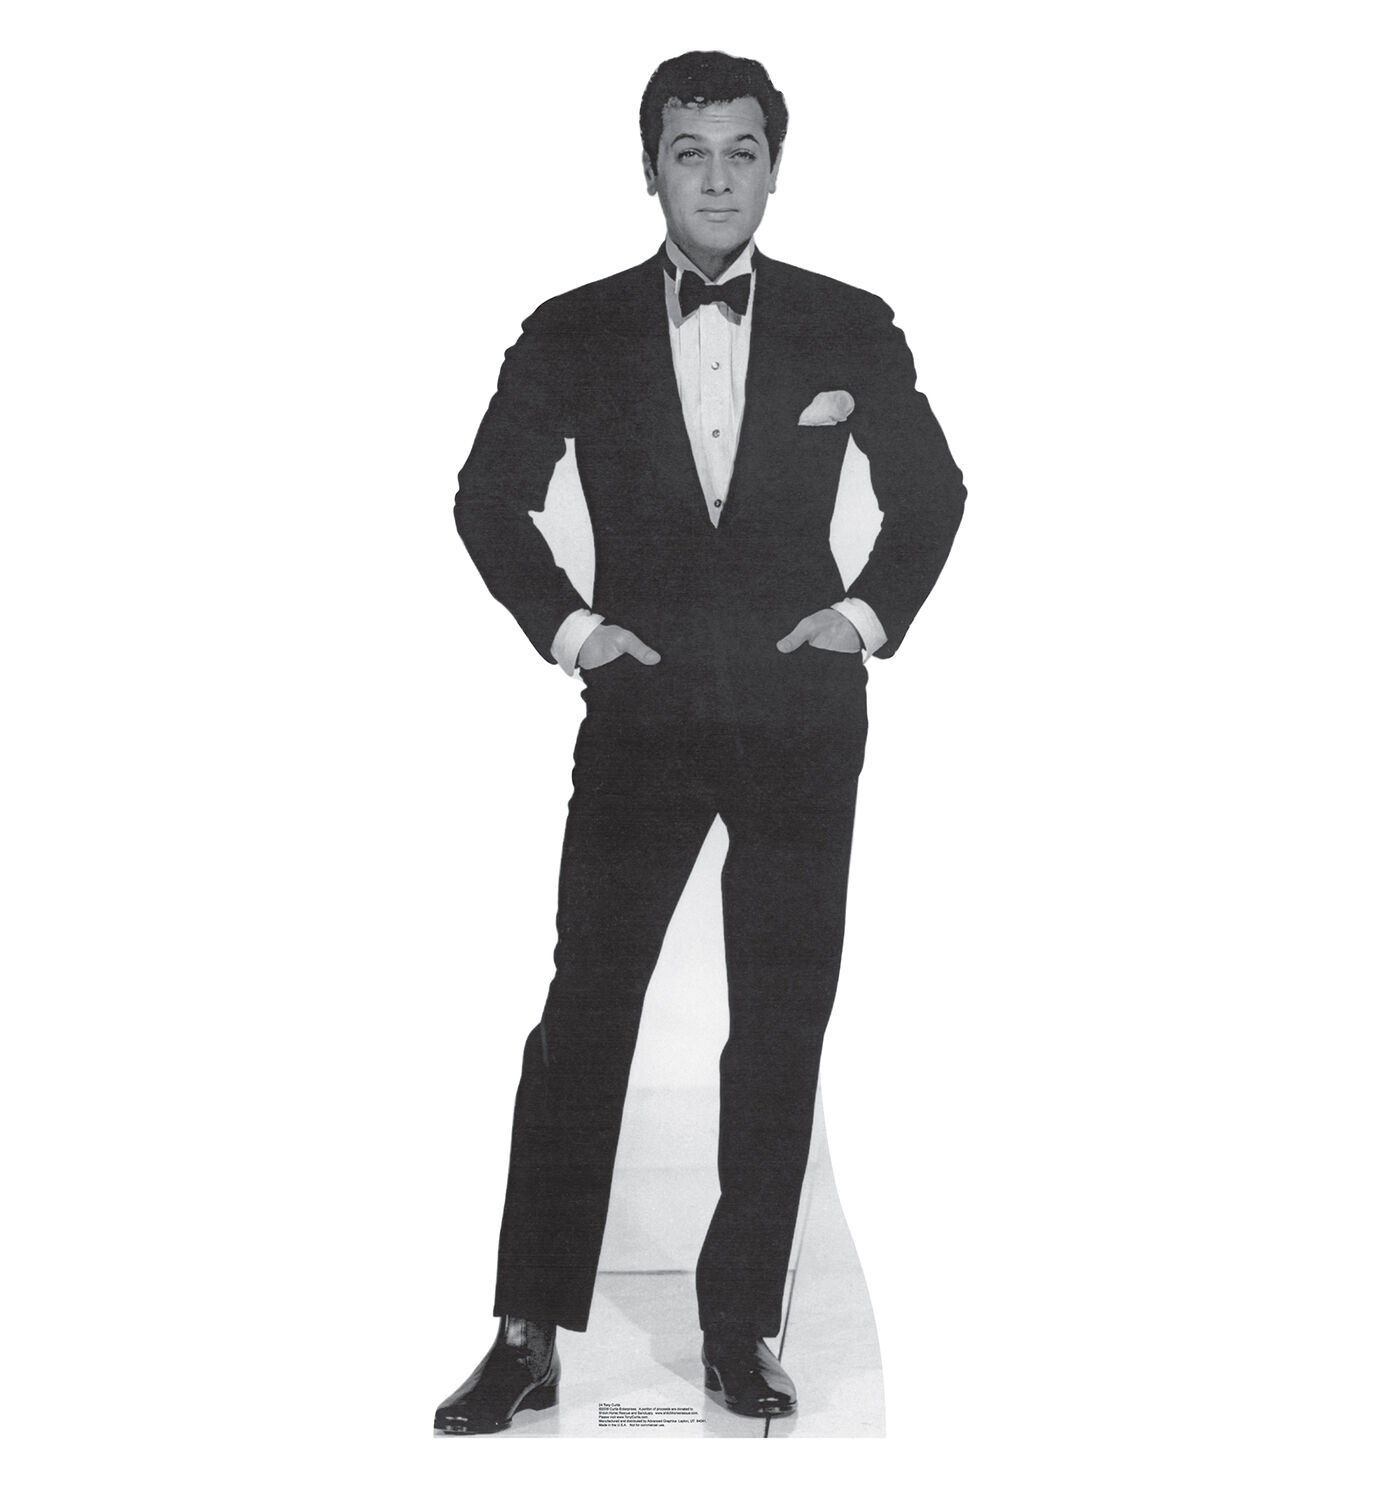 Tony Curtis Hollywood Film Star Cardboard Cutout Standup. Great for Parties